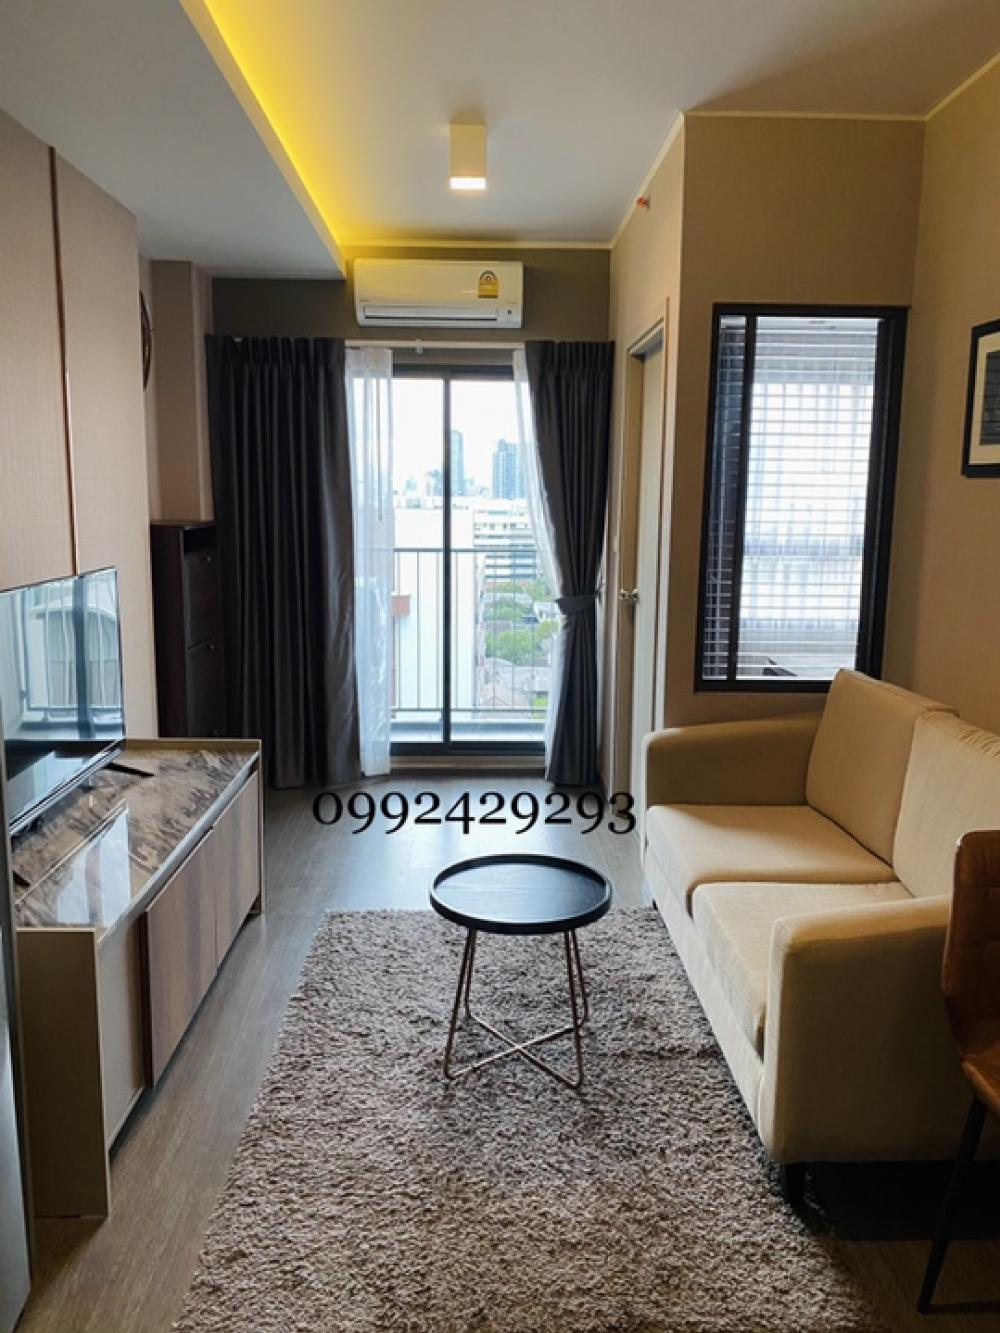 For RentCondoOnnut, Udomsuk : Ideo Sukhumvit 93 Beautiful room, ready to rent.